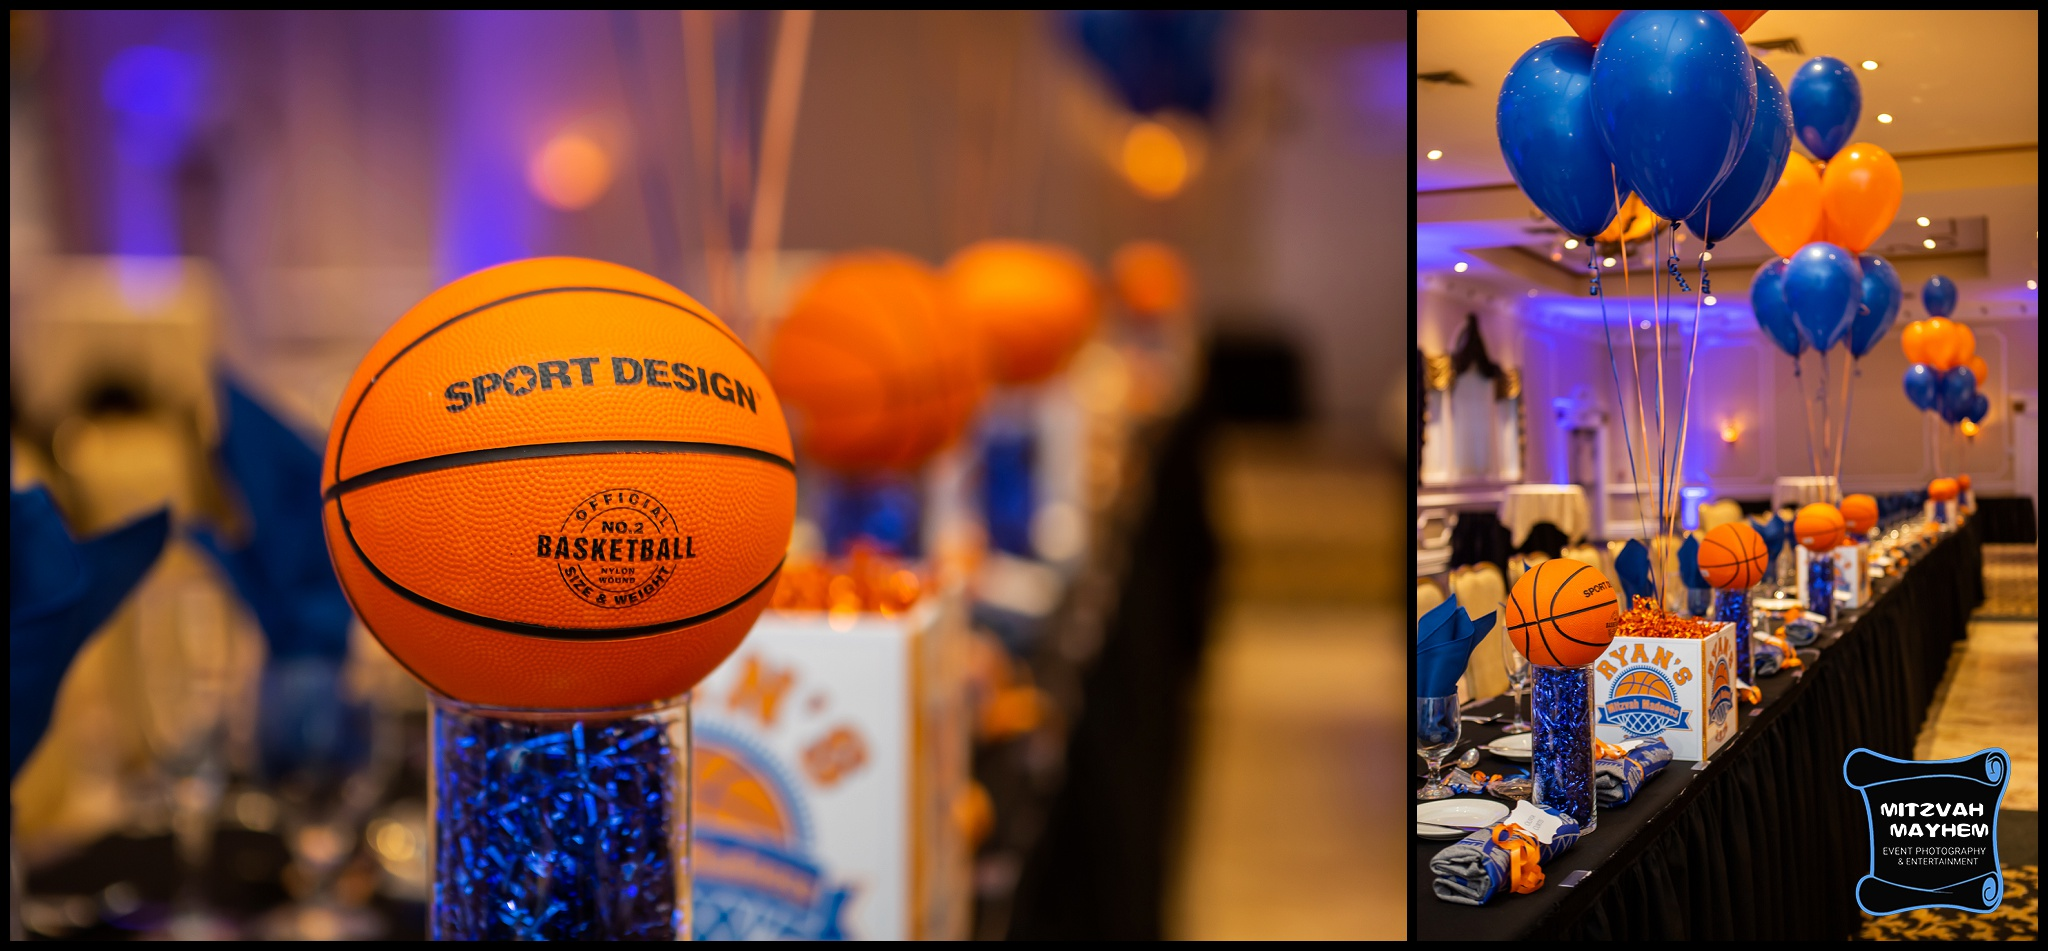 nj-mitzvah-photographer-jacques-caterers-21.JPG